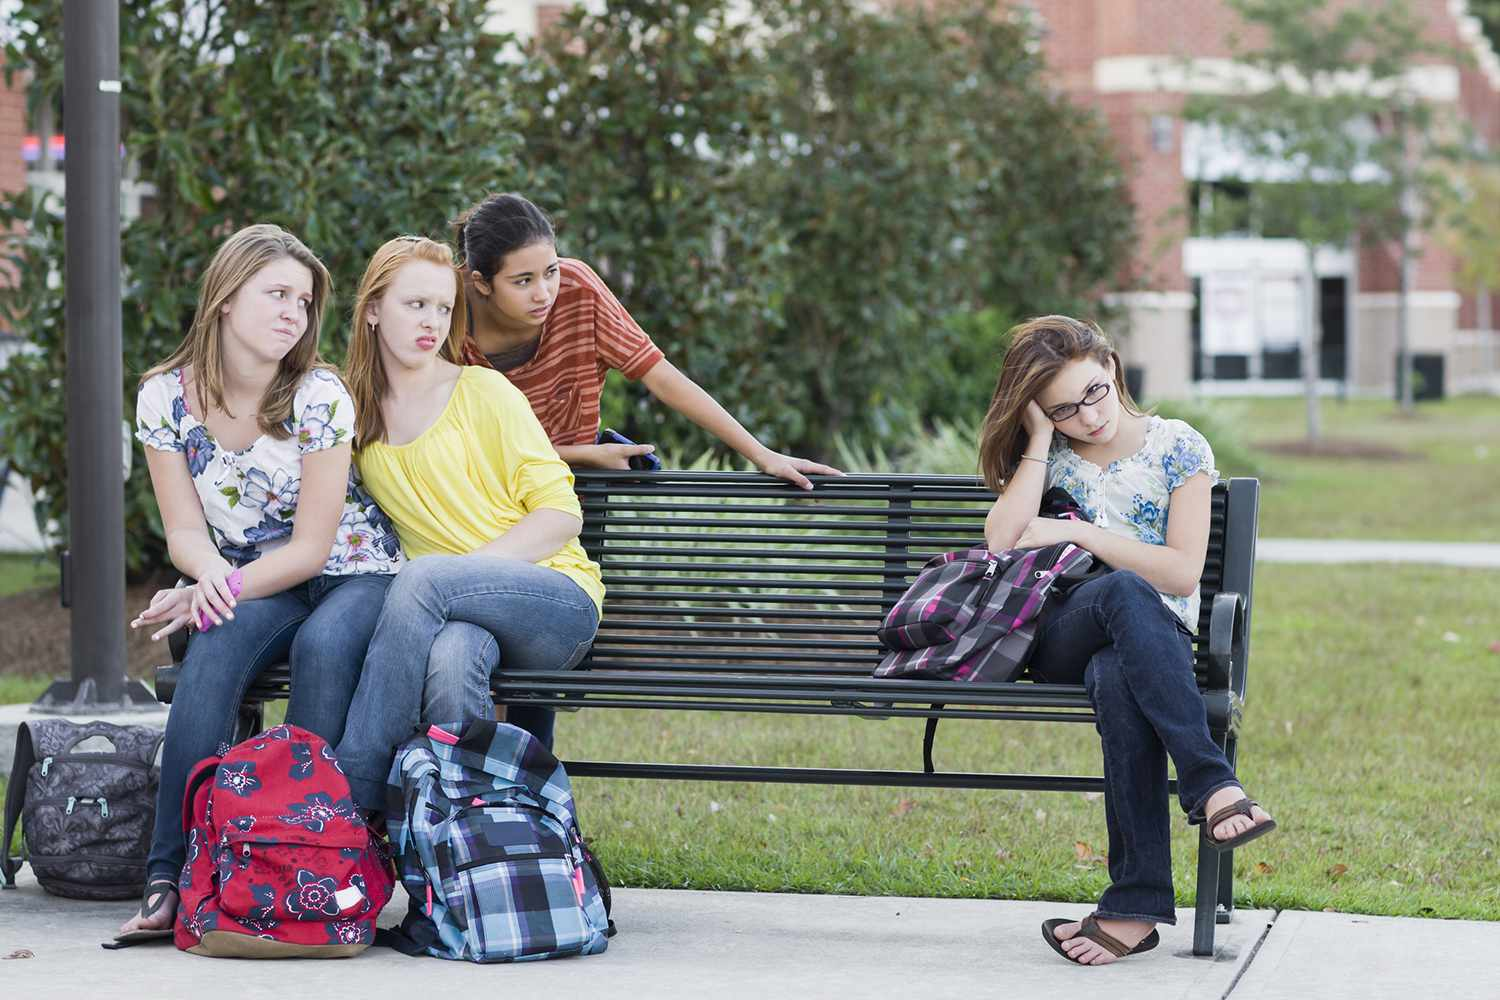 3 girls glaring at a 4th girl, all on a park bench